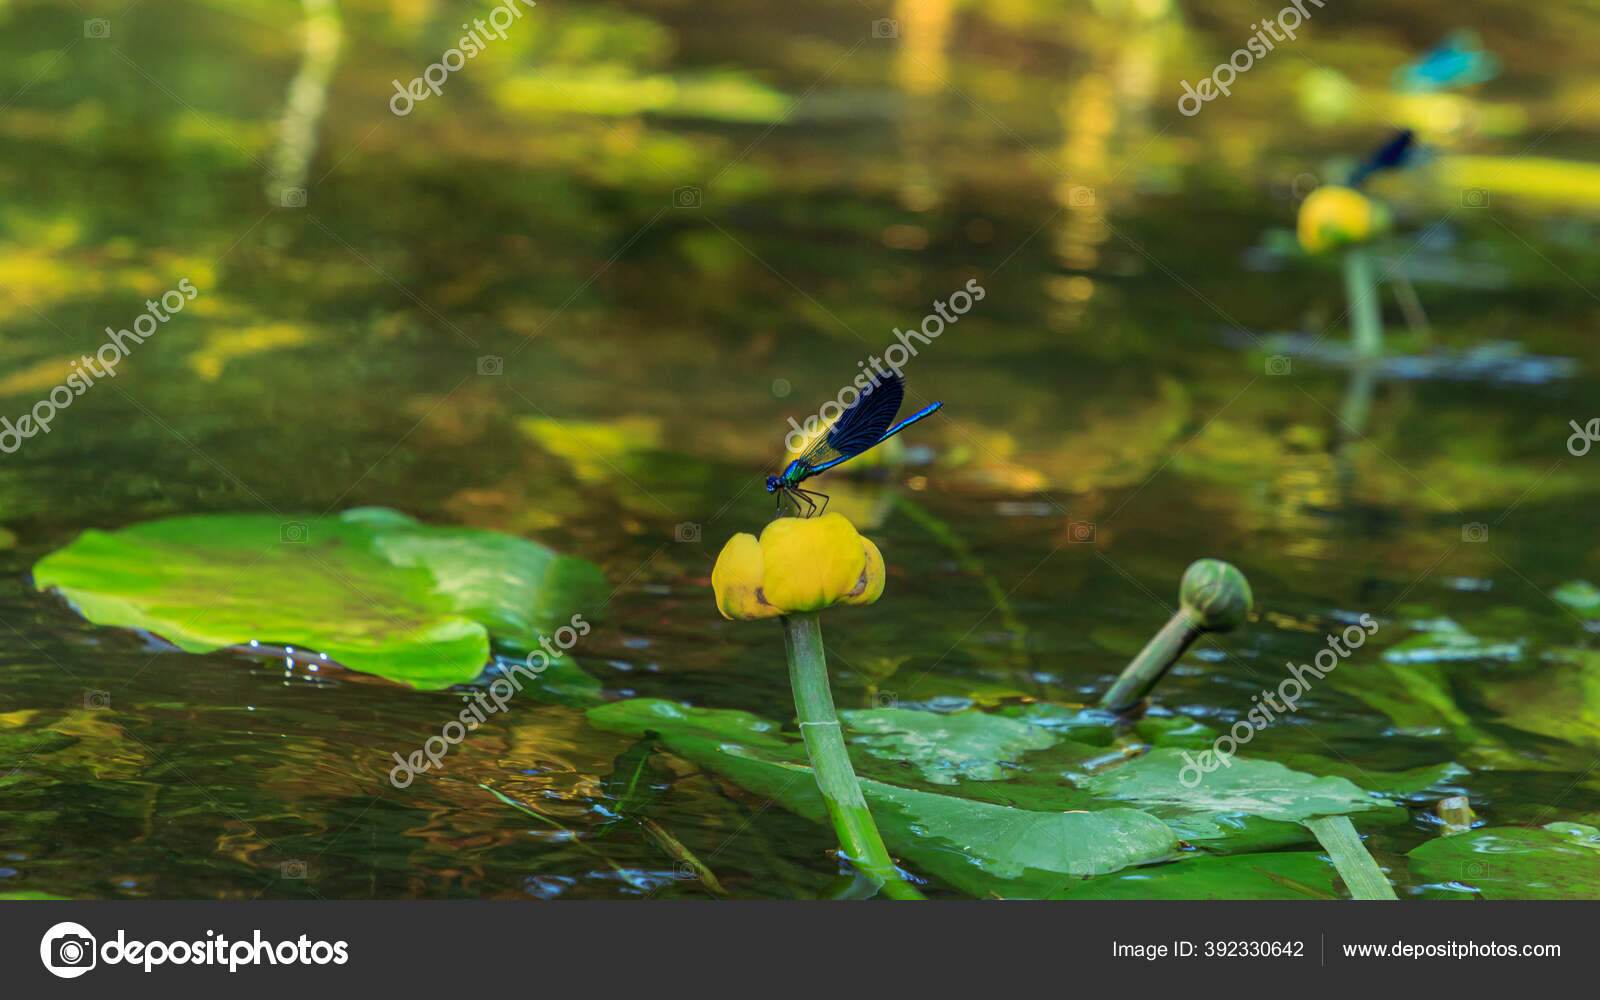 Blue Dragonflys Sitting Yellow Water Lilie River Flower Plants Water Stock Photo Image By Scudrinja 392330642